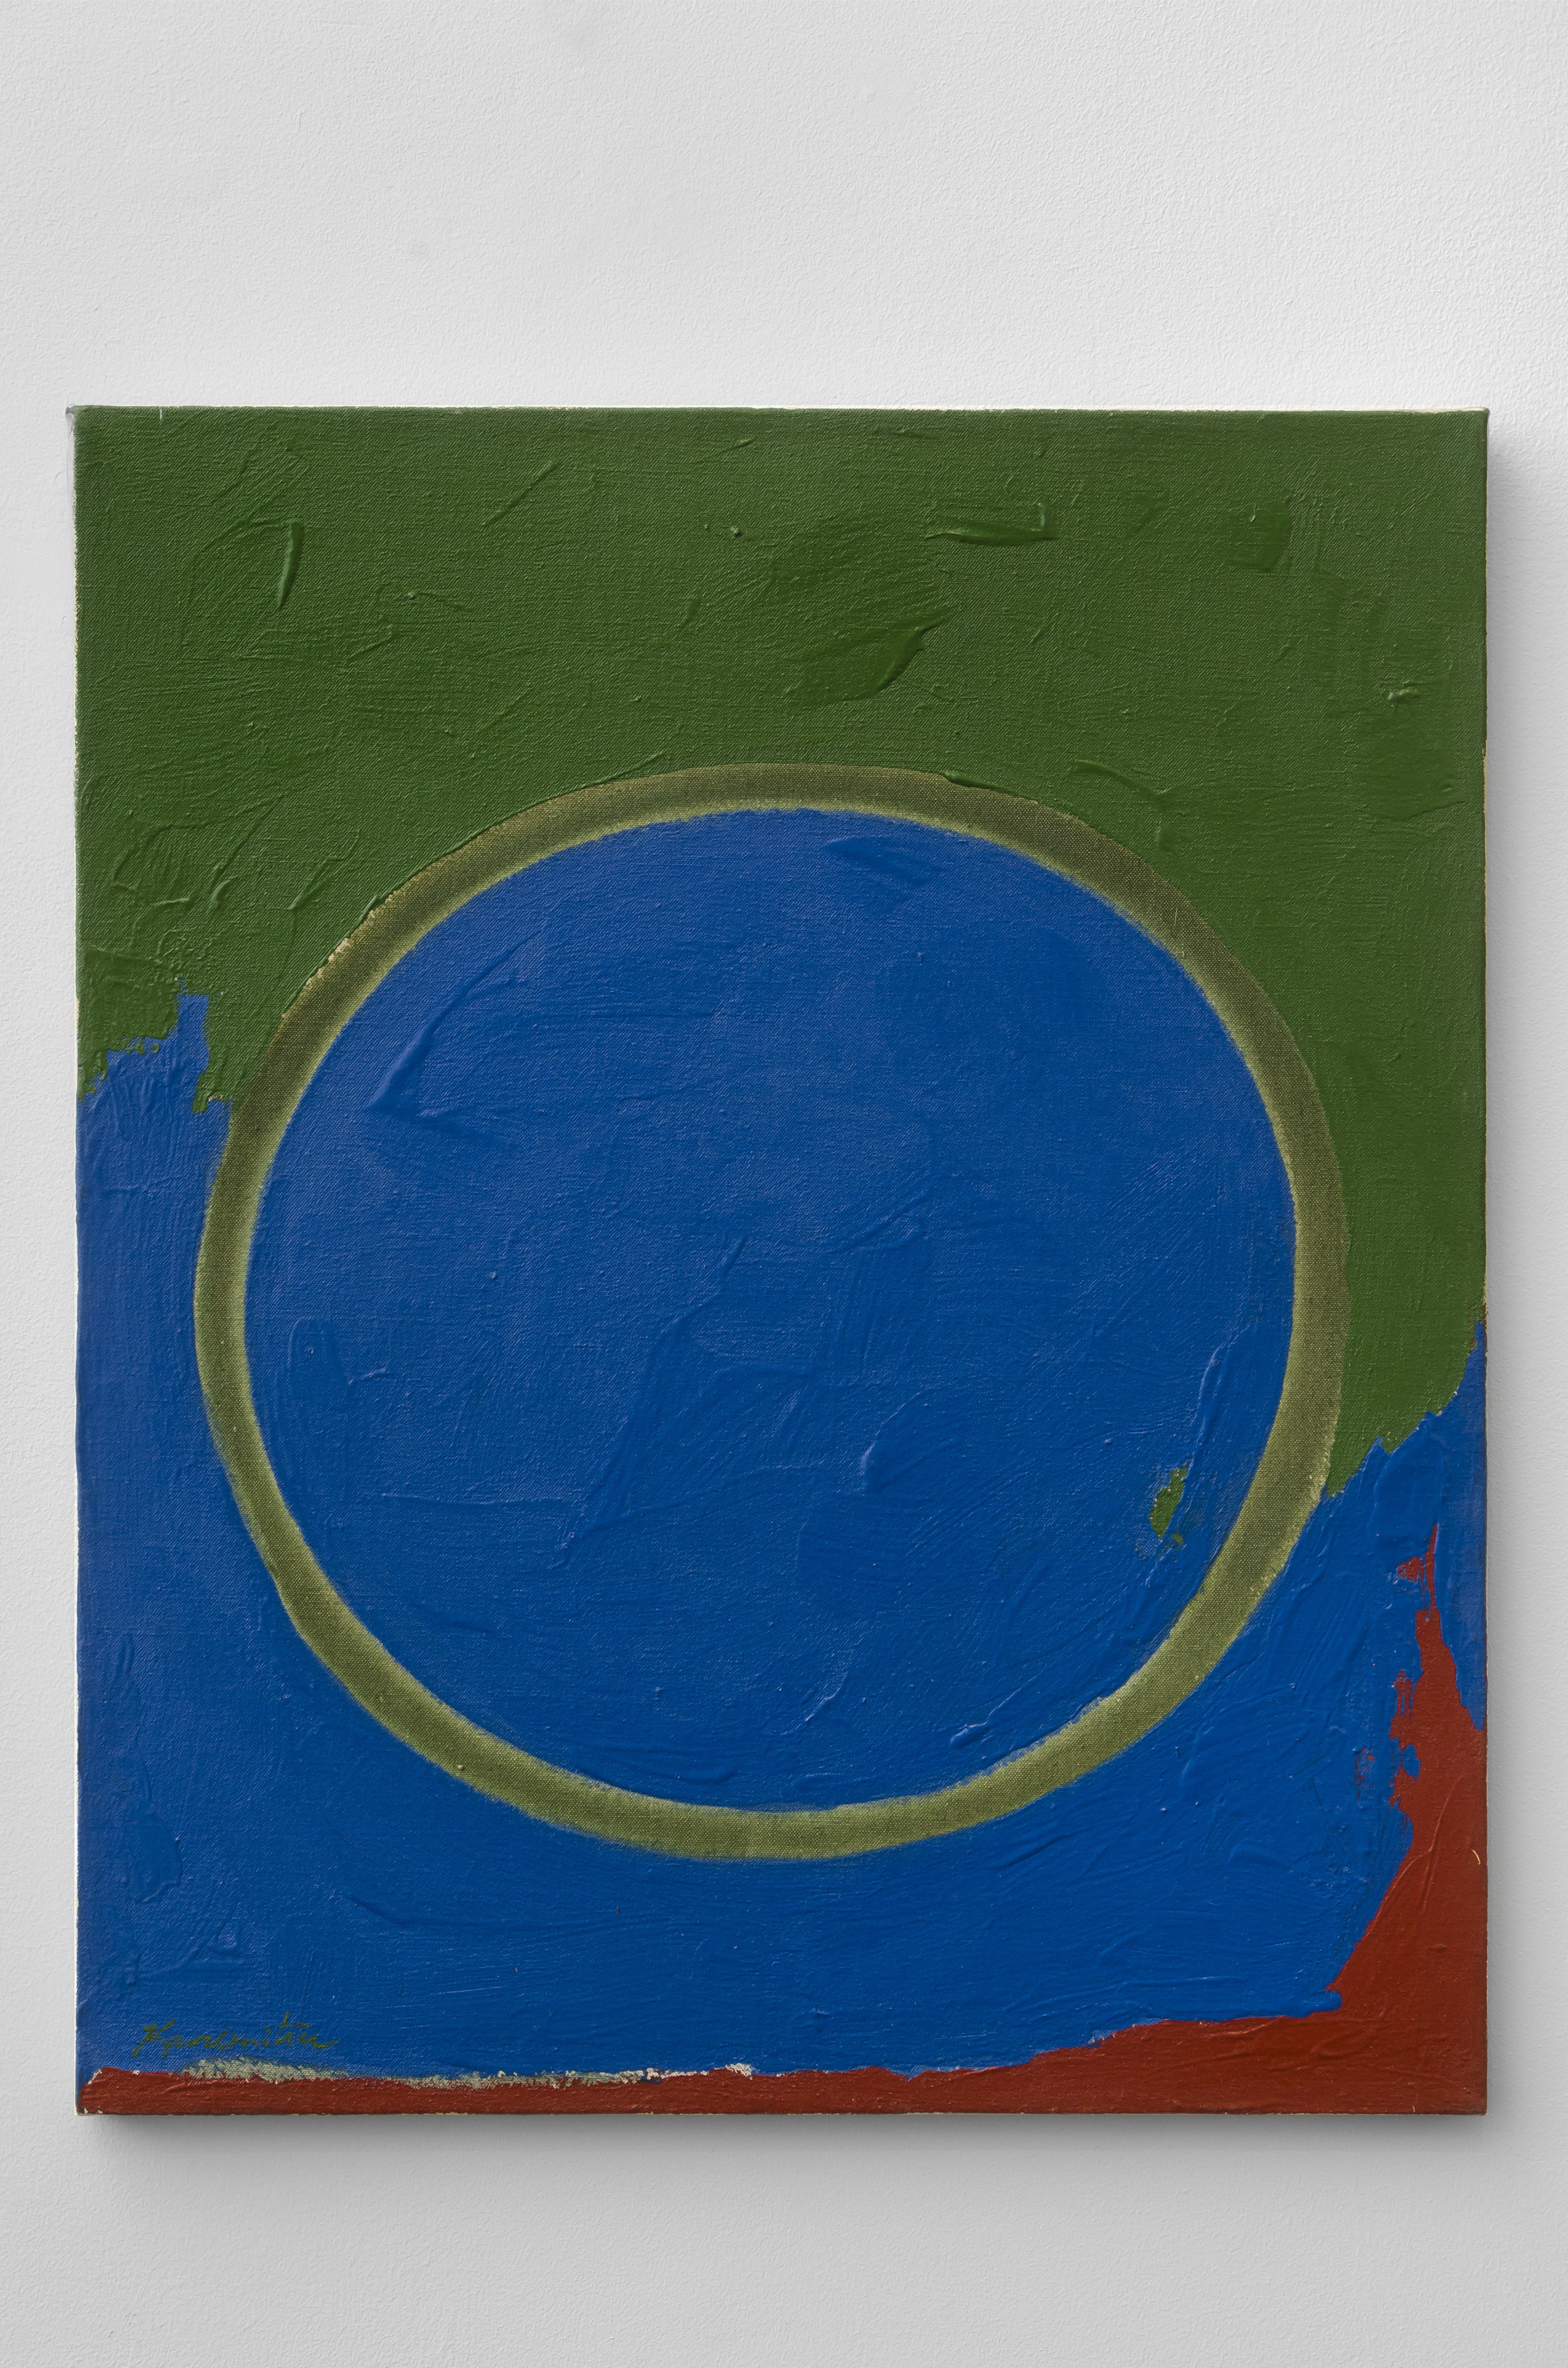 Opening , 1962  acrylic on canvas 24 x 20 inches; 61 x 76.2 centimeters  $10,000